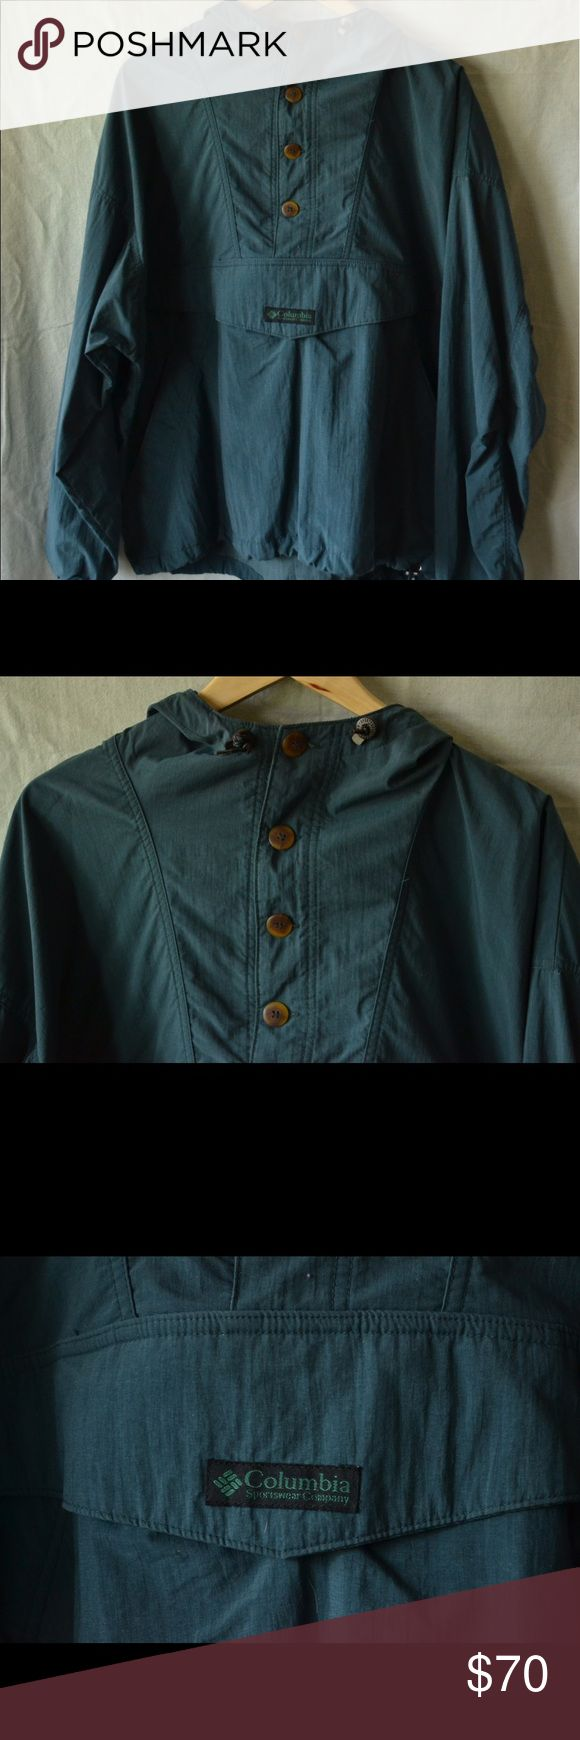 Vintage Teal Columbia Pullover Windbreaker, M/L Amazing Vintage Columbia Pullover Windbreaker. Interesting material texture plus has really cool wooden buttons and three color string pulls. Center stomach pocket. This thing could be perfect for a period indie film. Size tag has worn away, fits like a M/L. Columbia Jackets & Coats Windbreakers